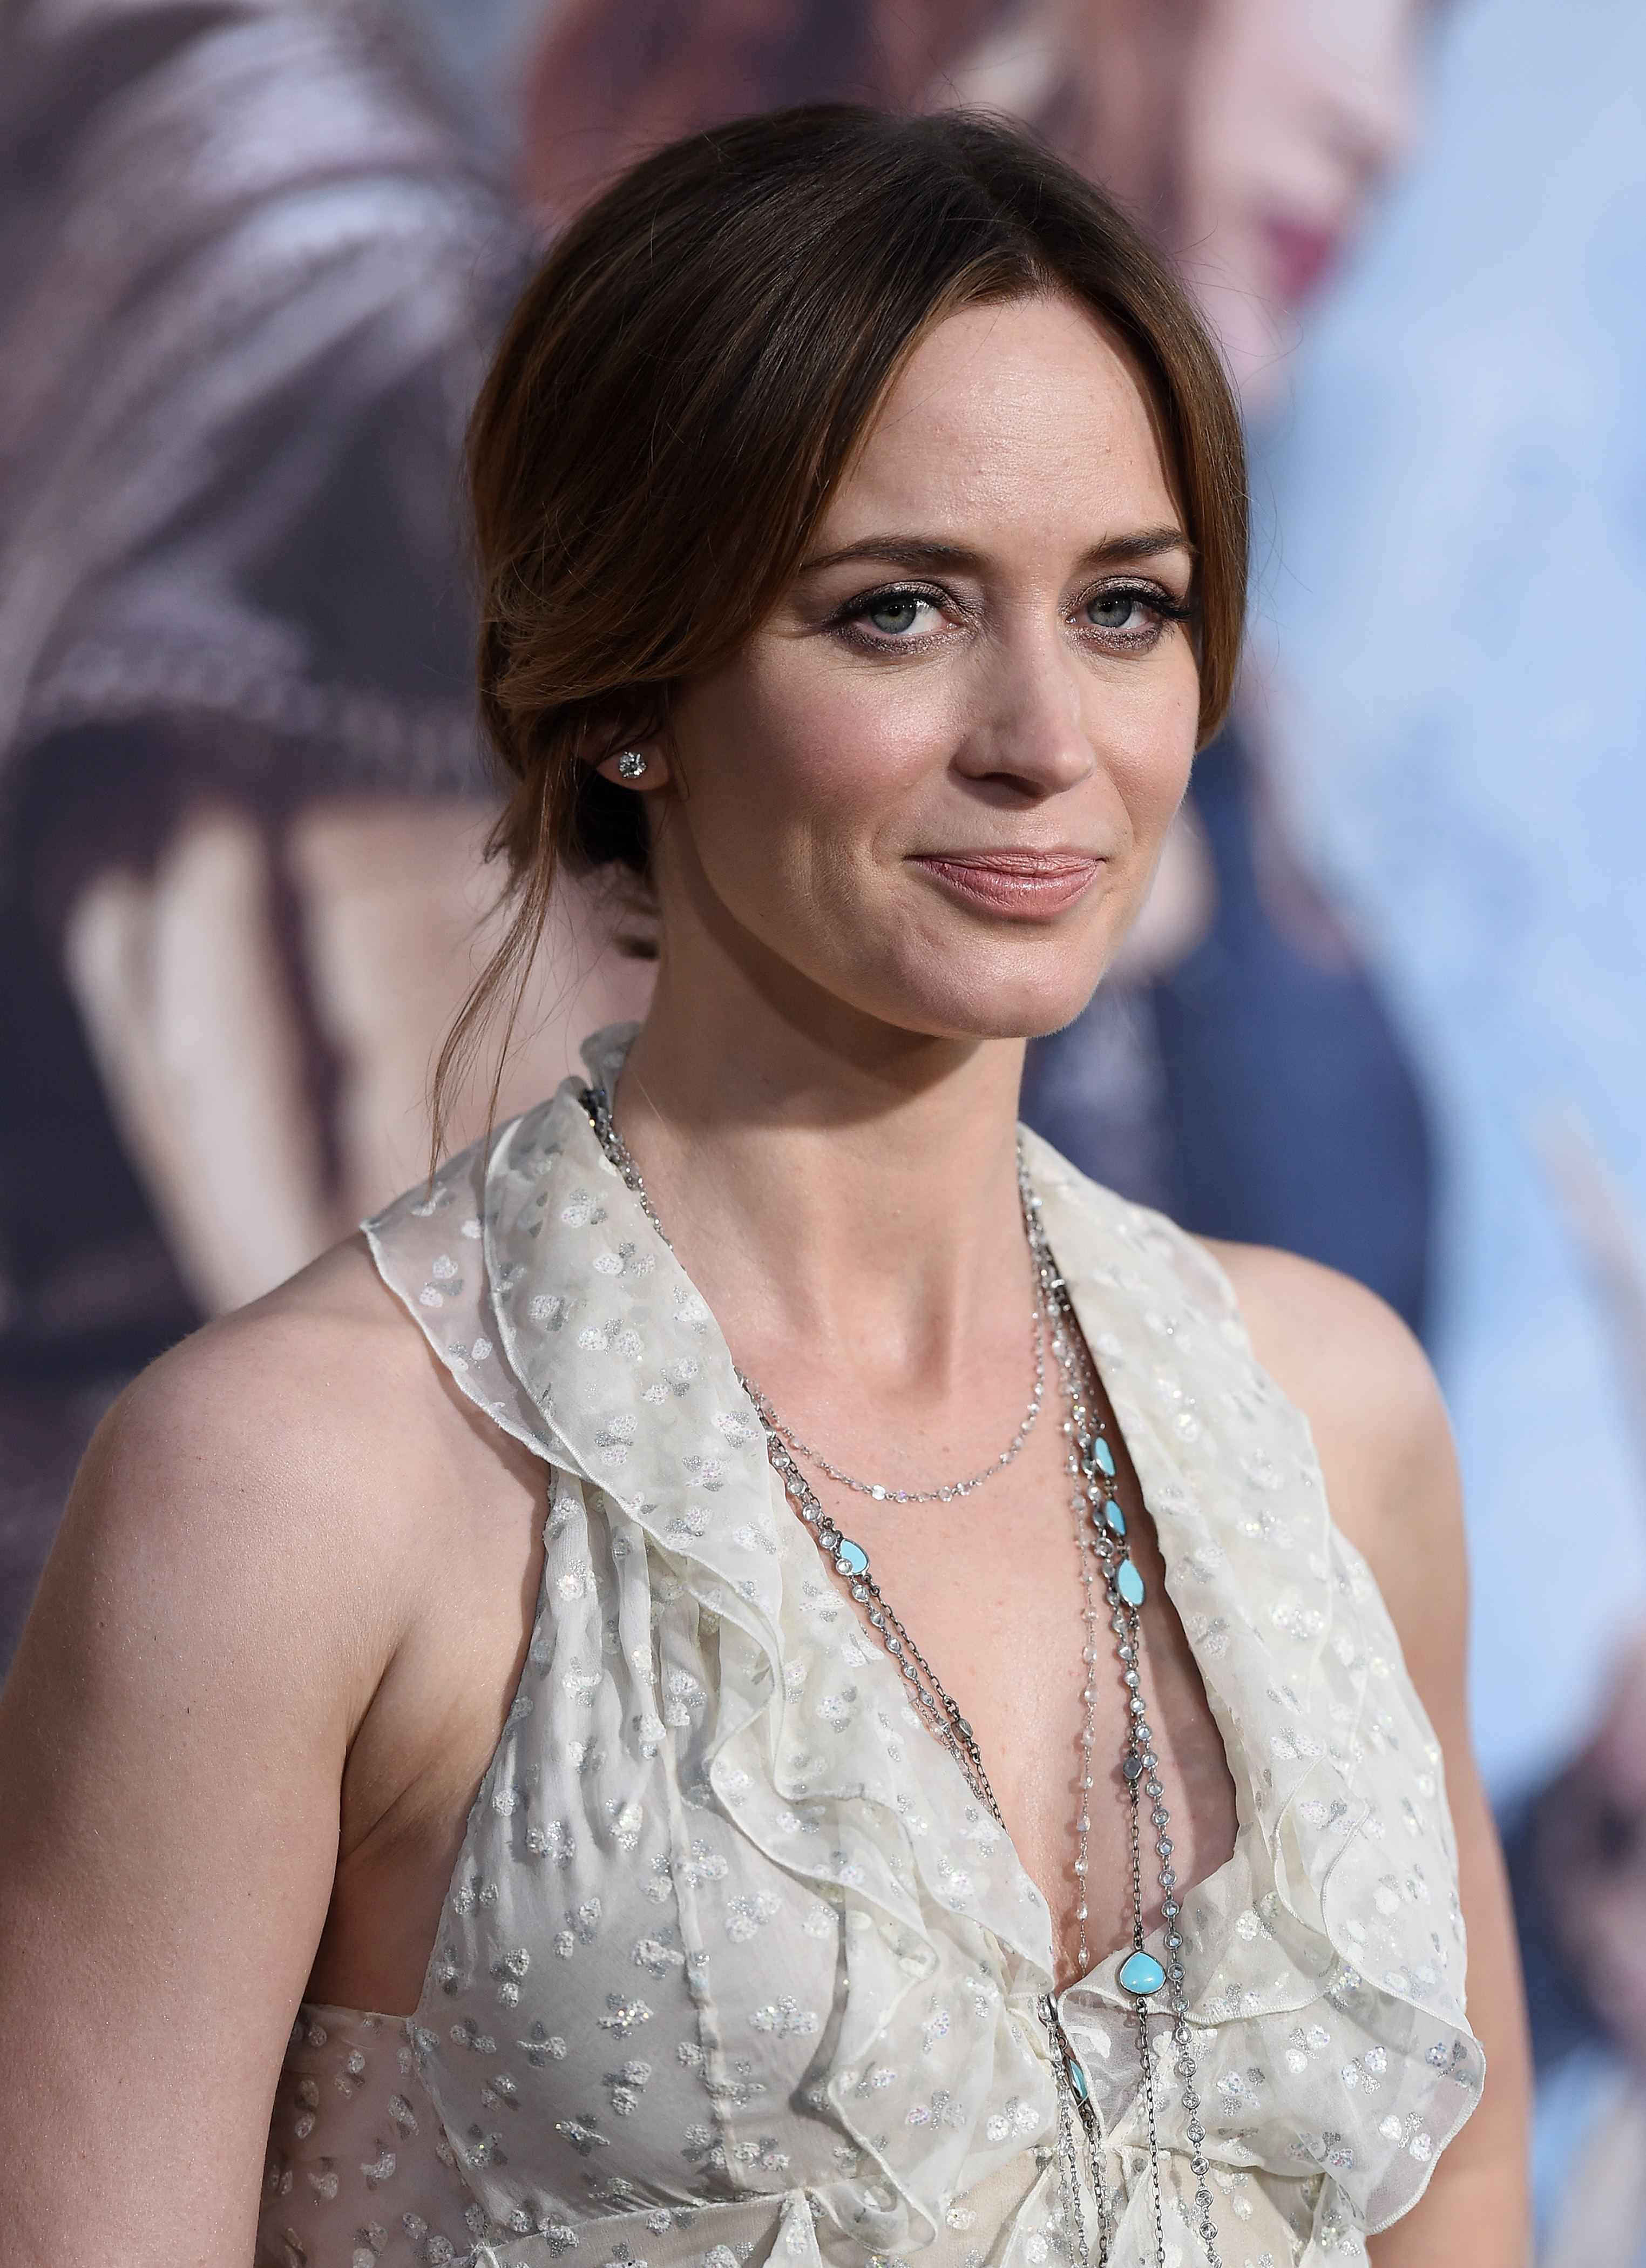 Emily Blunt arrives at the premiere of 'The Huntsman: Winter's War' on April 11, 2016 in Westwood, California.